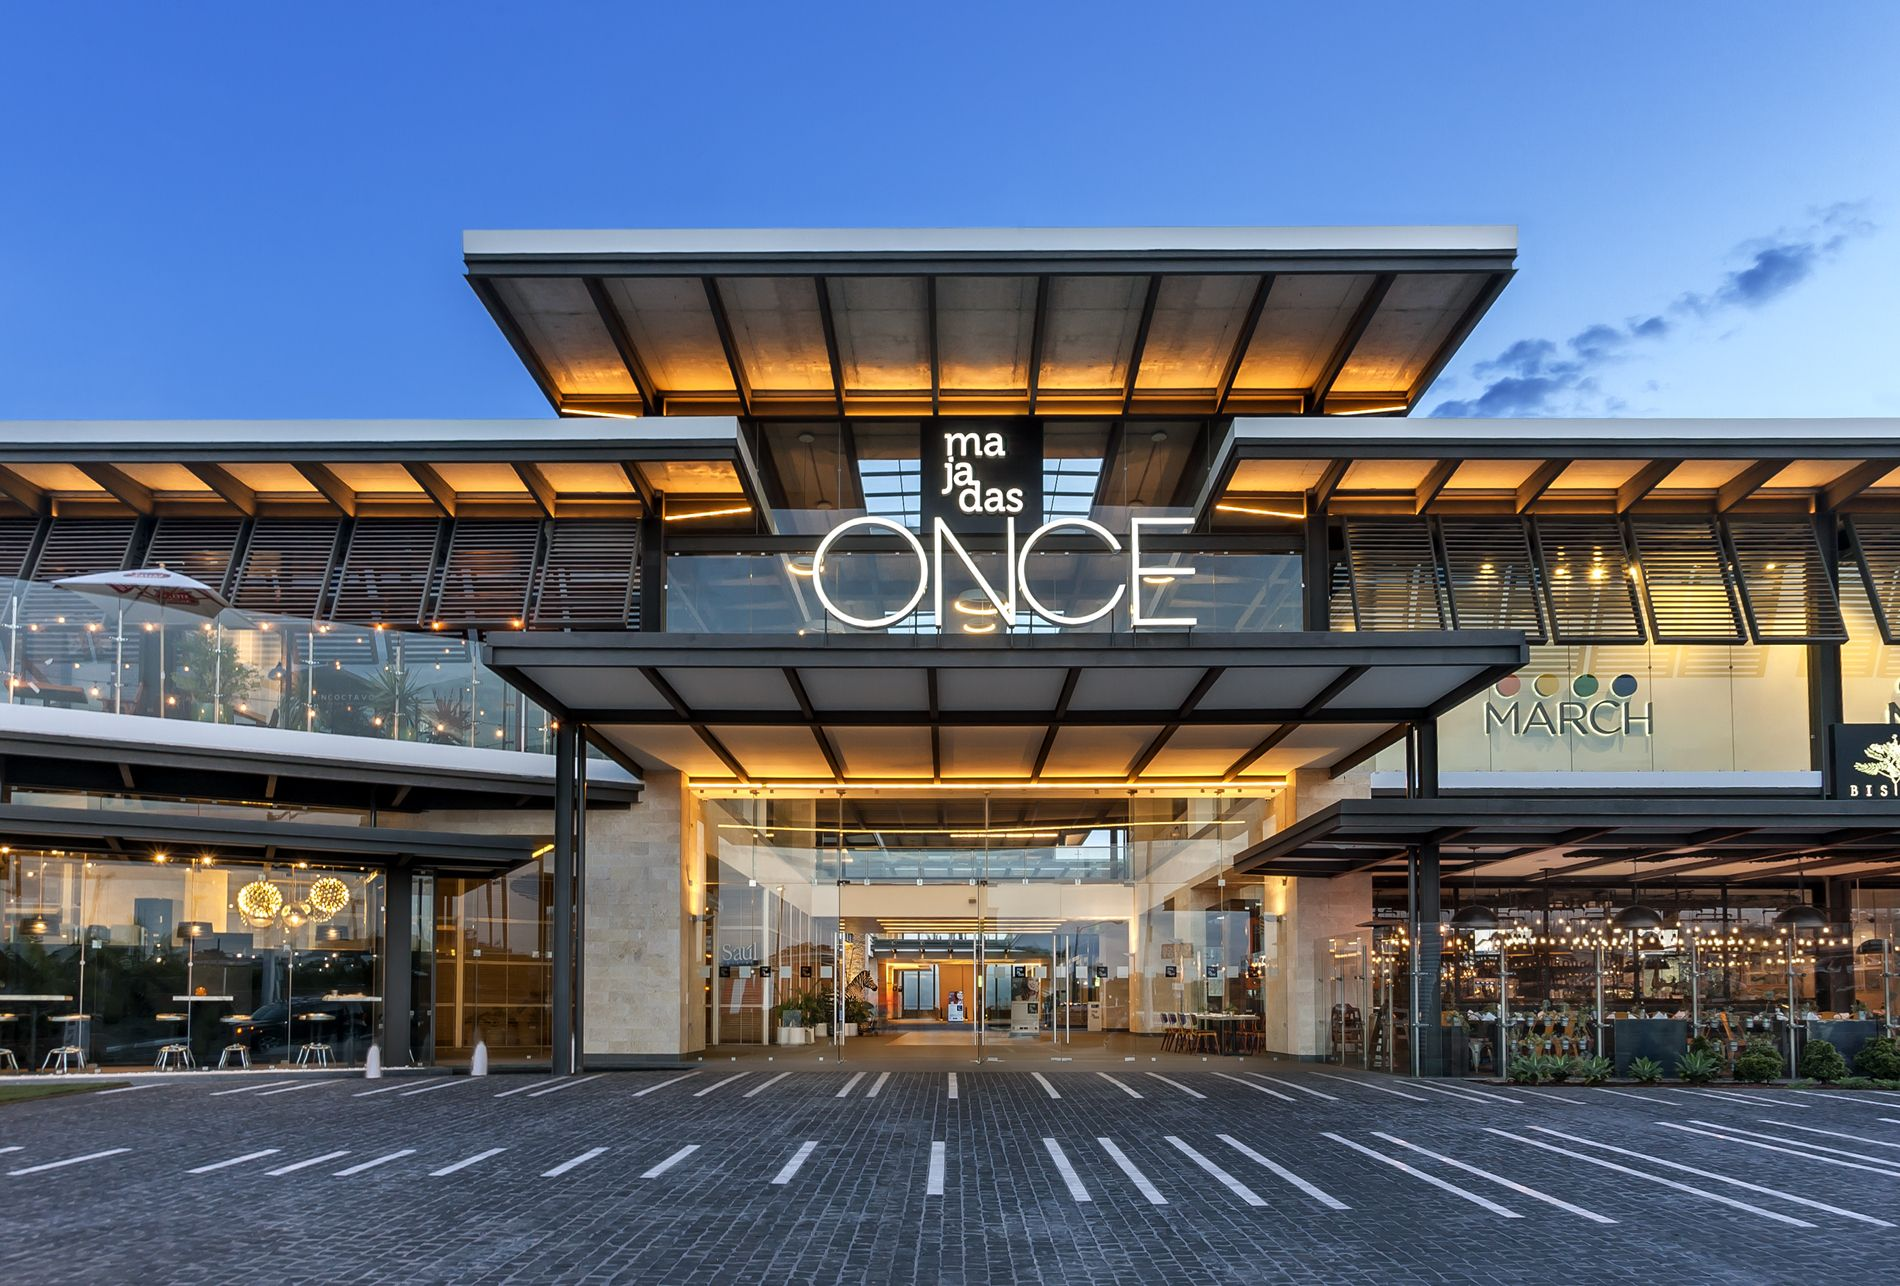 Majadas once darcon comercial pinterest shopping for Modern retail building design